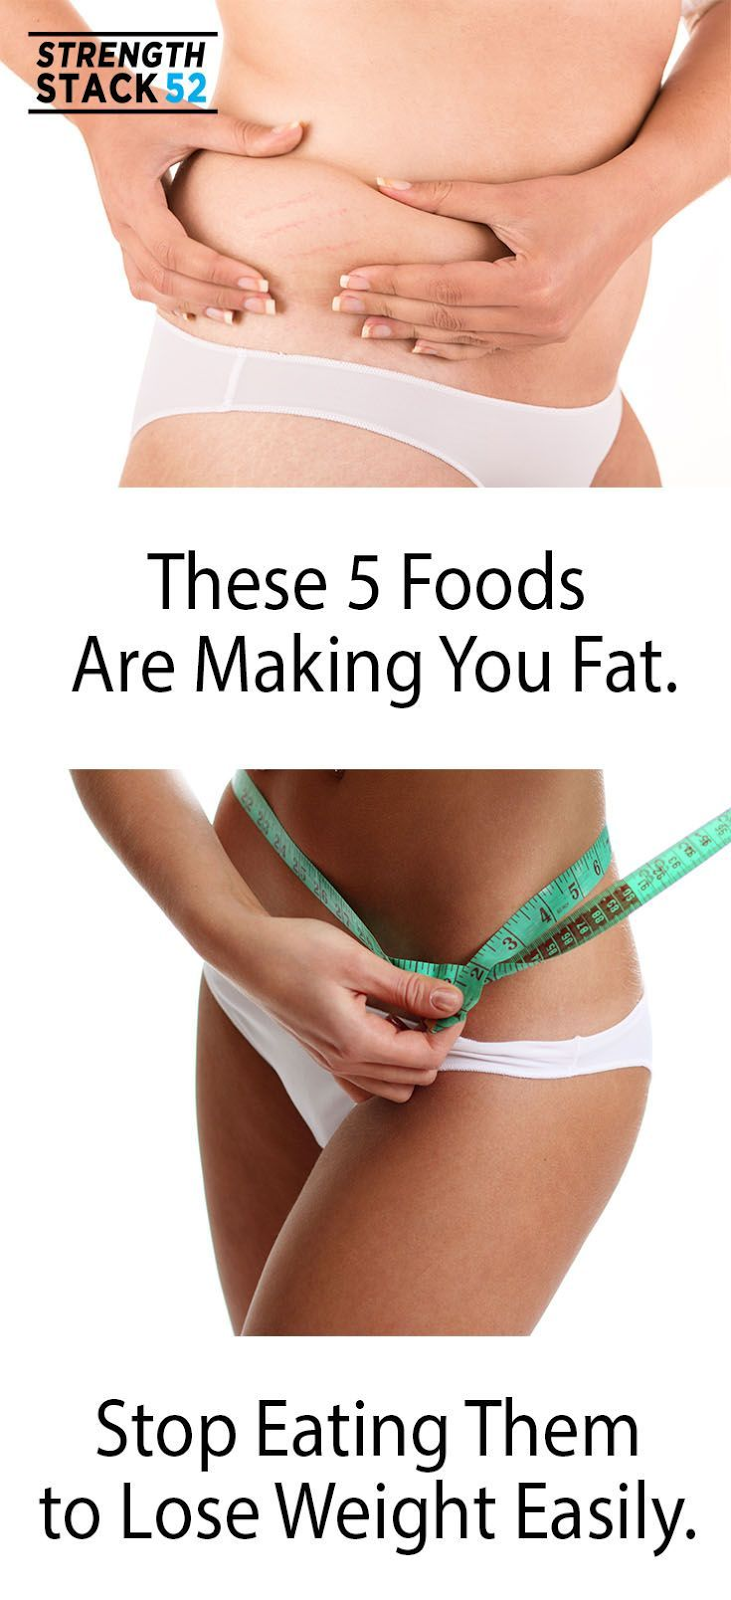 These Five Foods Are Making You Fat. Stop Eating Them.